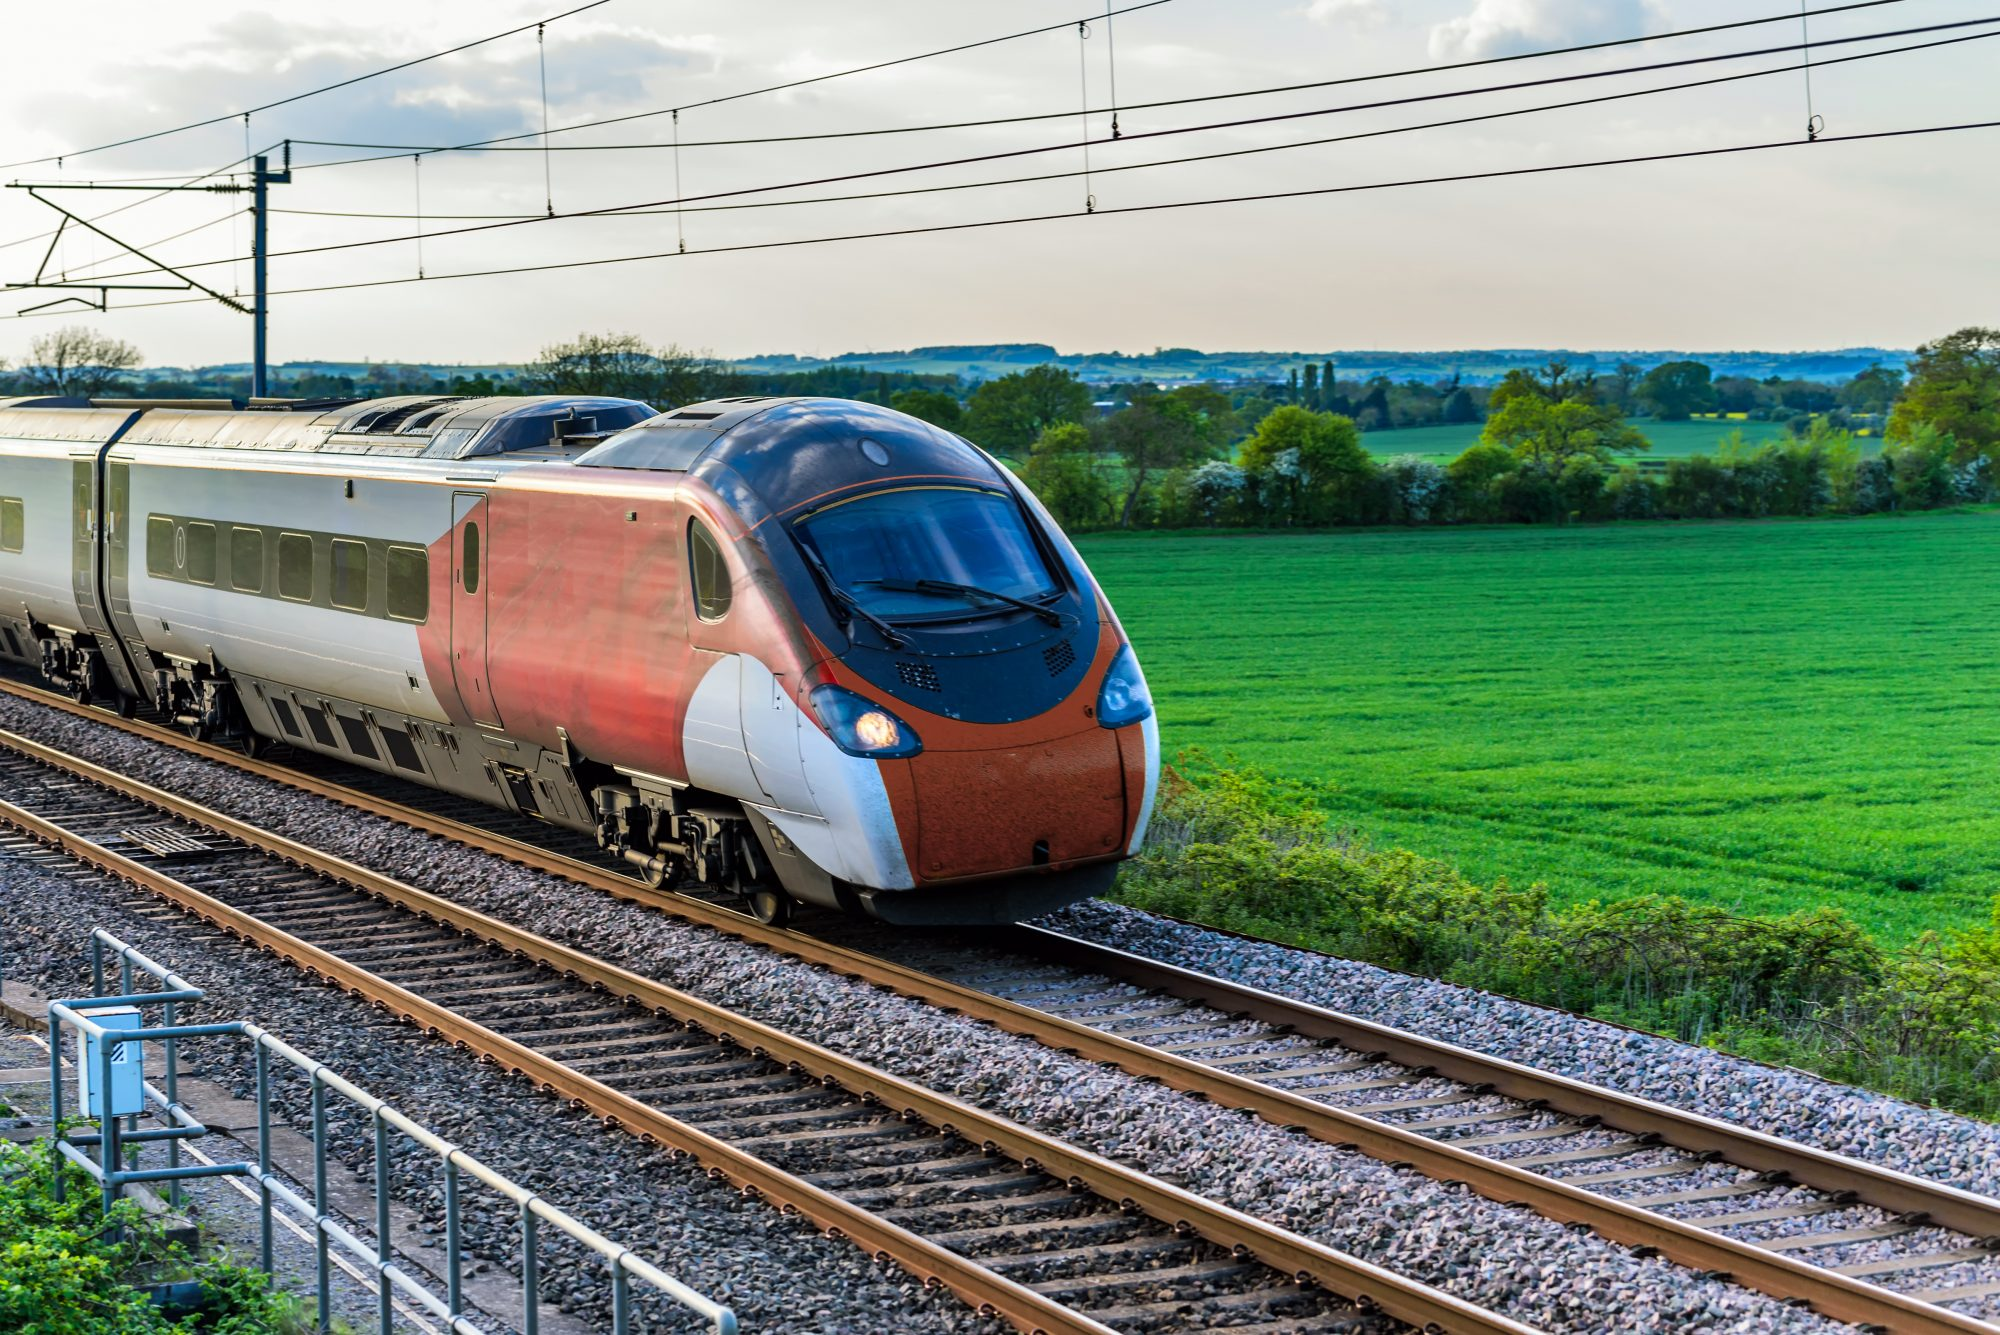 Project SPEED to boost innovative construction on rail projects